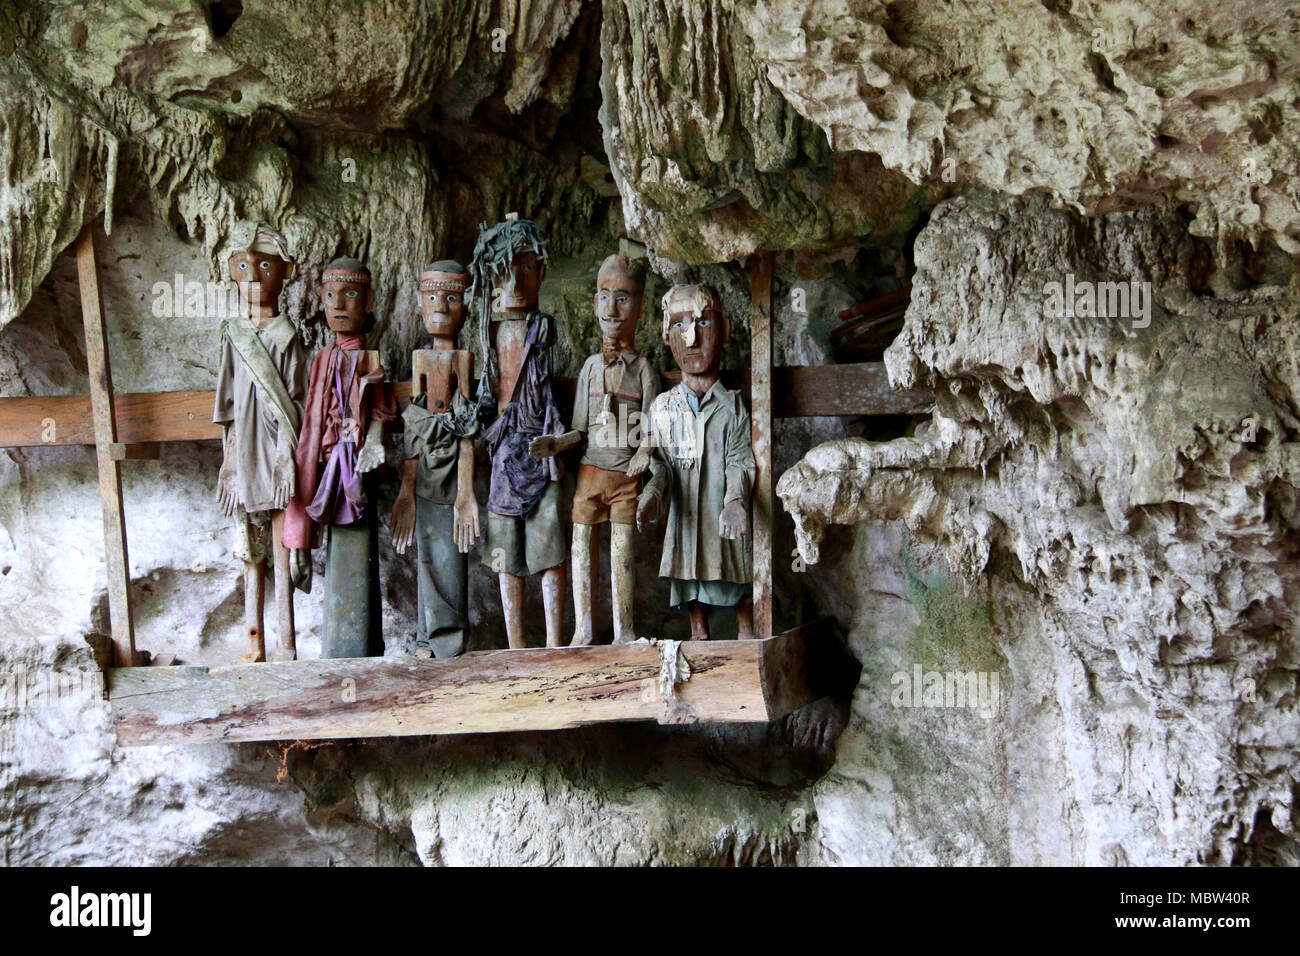 Guardians of the Dead: Tau-Tau's in the Tampang Allo Burial Cave, Sulawesi, Indonesia - Stock Image